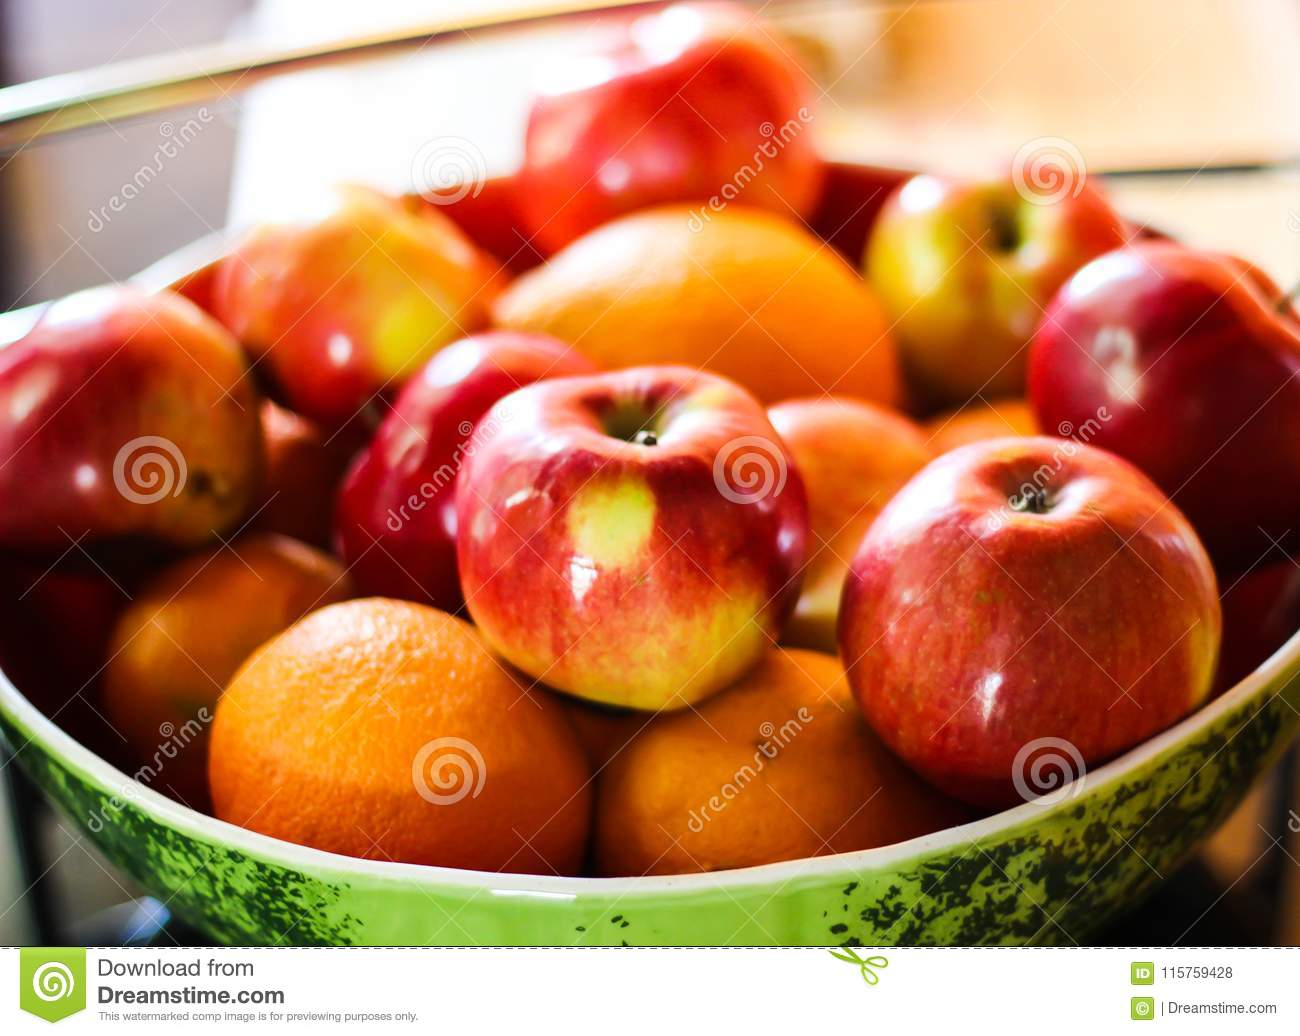 Apples and oranges fruit plate